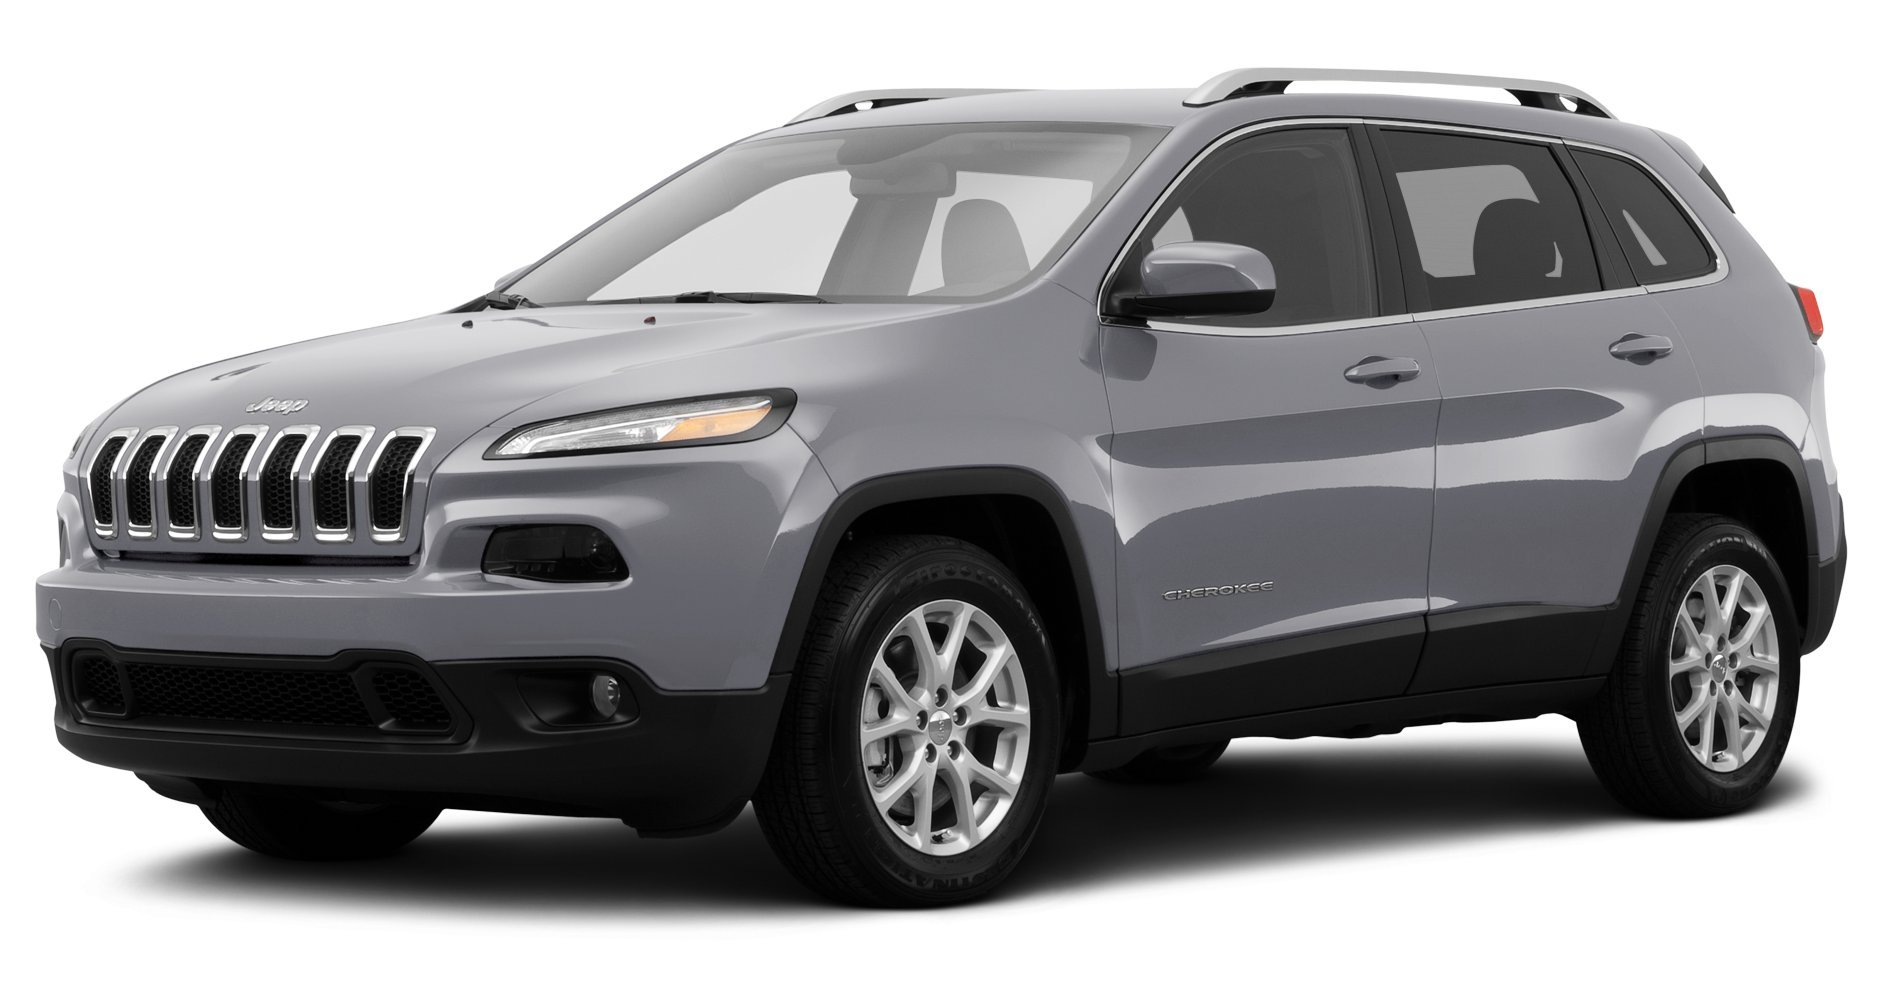 2014 jeep cherokee reviews images and specs vehicles. Black Bedroom Furniture Sets. Home Design Ideas